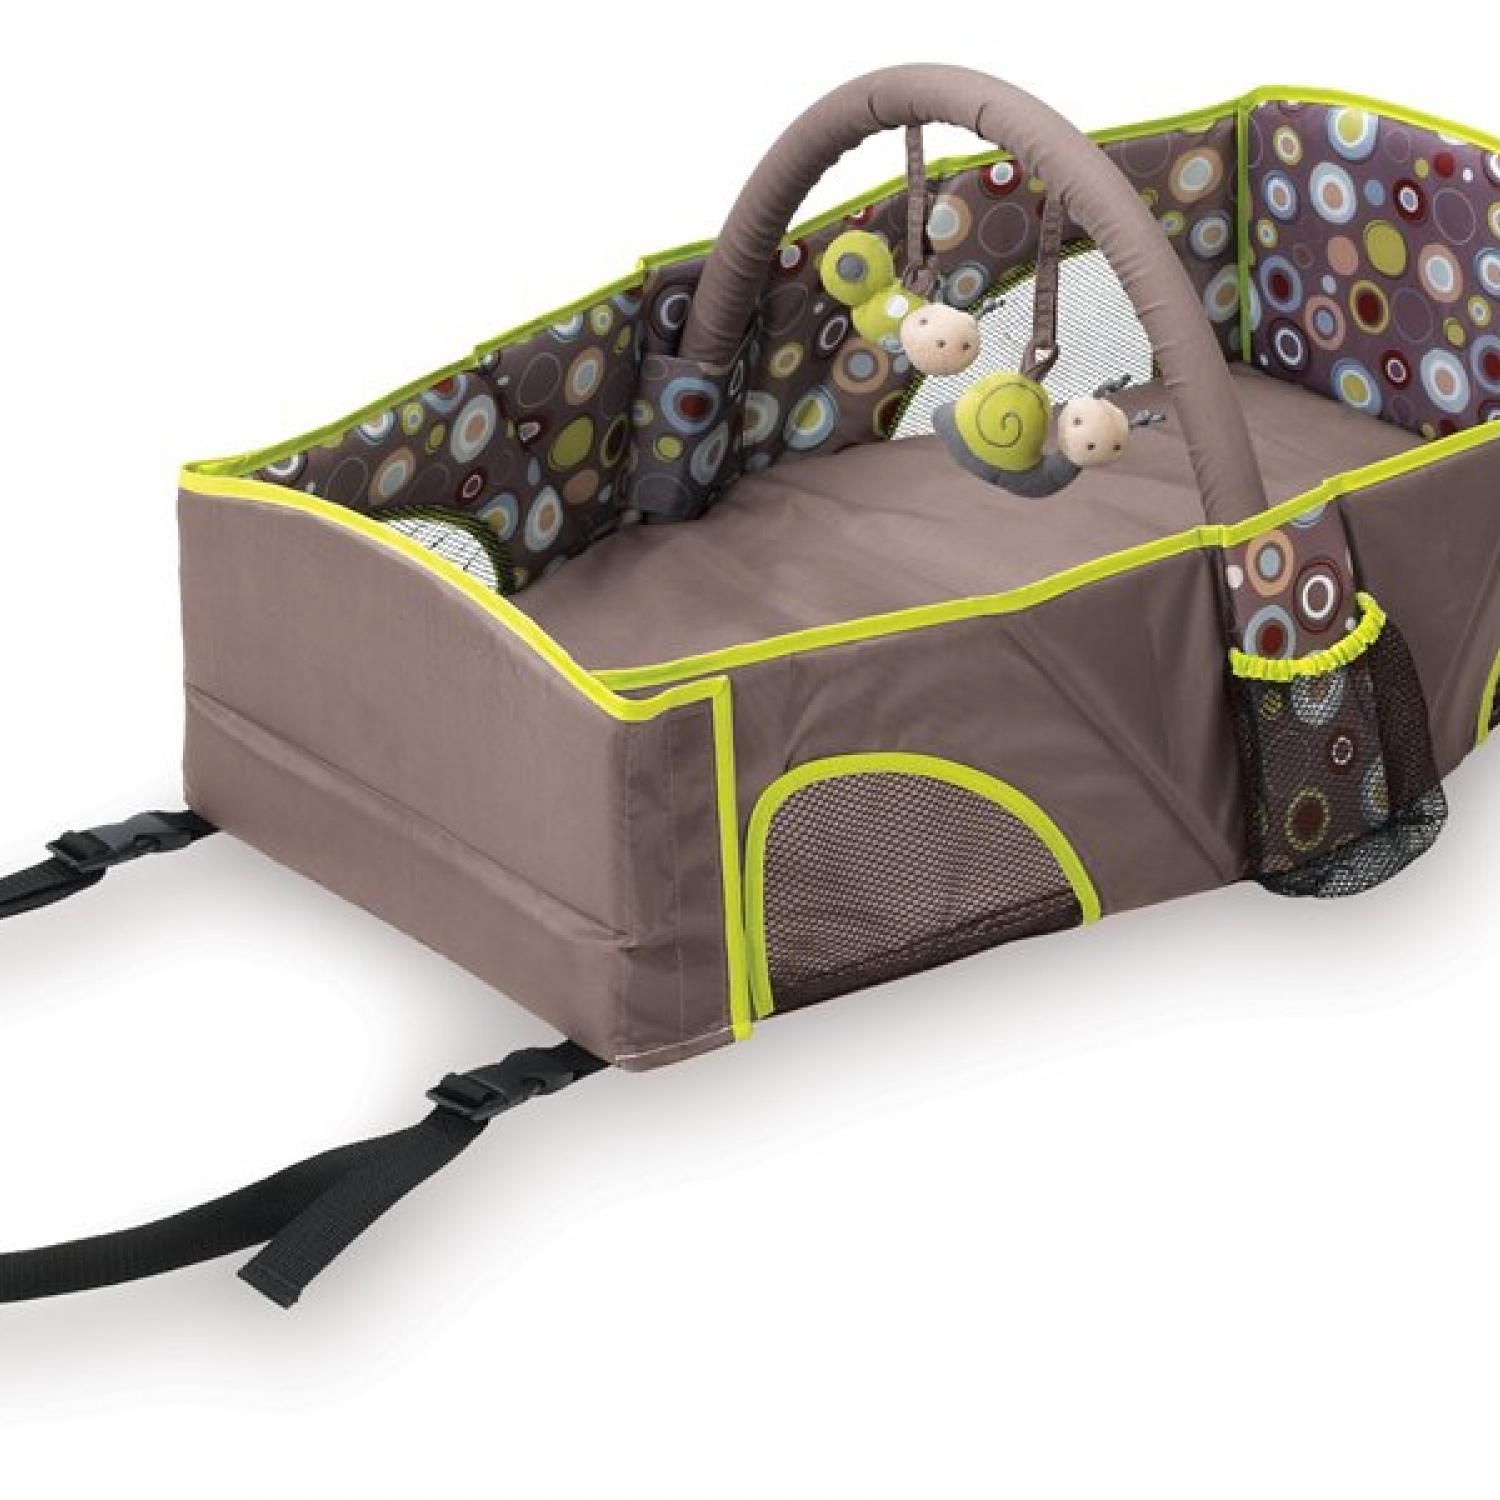 Alternatives to crib for babies - Alternatives To Crib For Babies 40